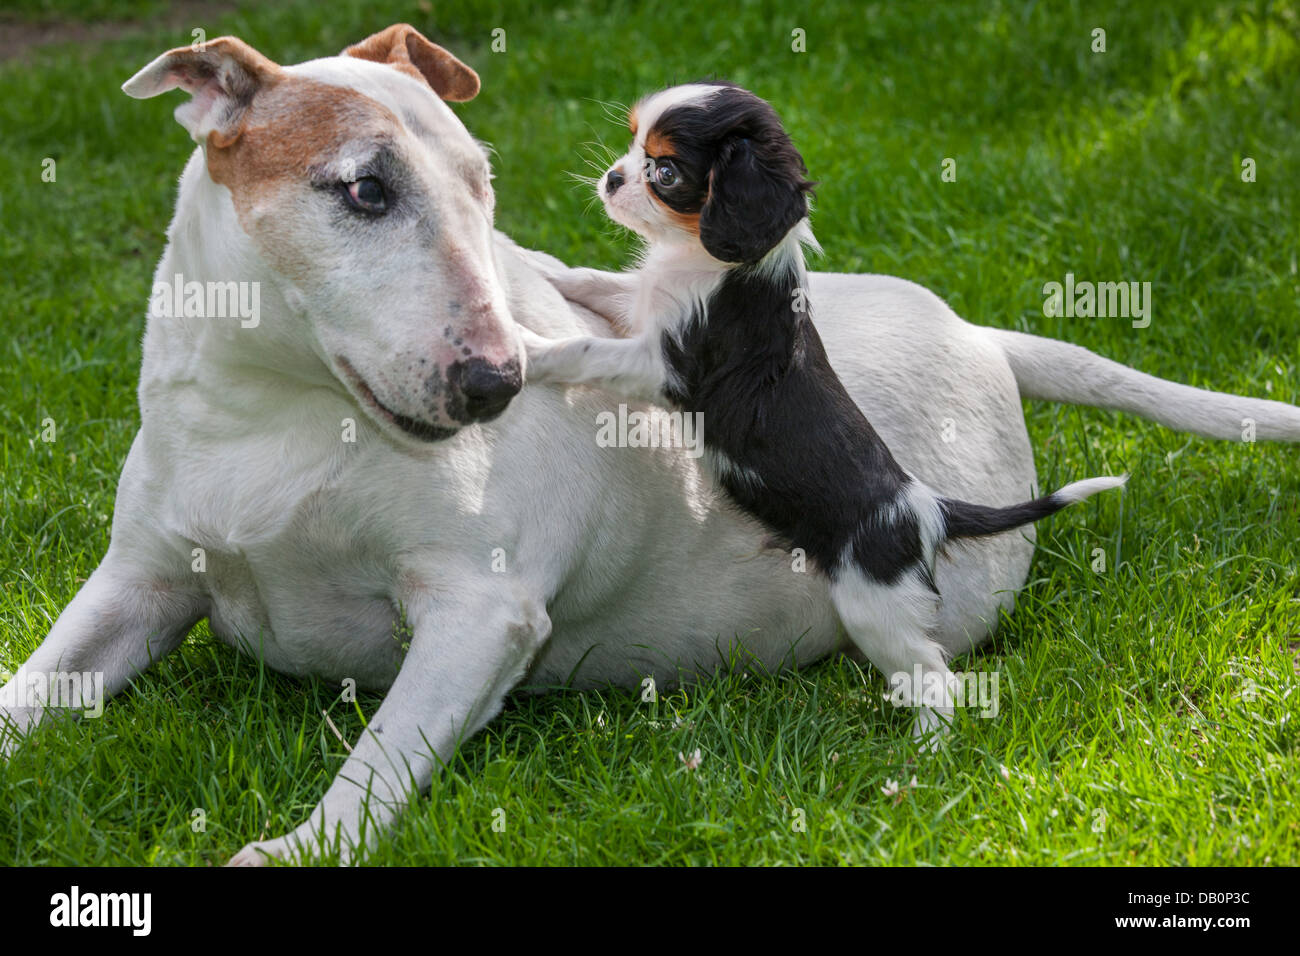 Cute Cavalier King Charles Spaniel Puppy Playing With Bull Terrier Stock Photo Alamy